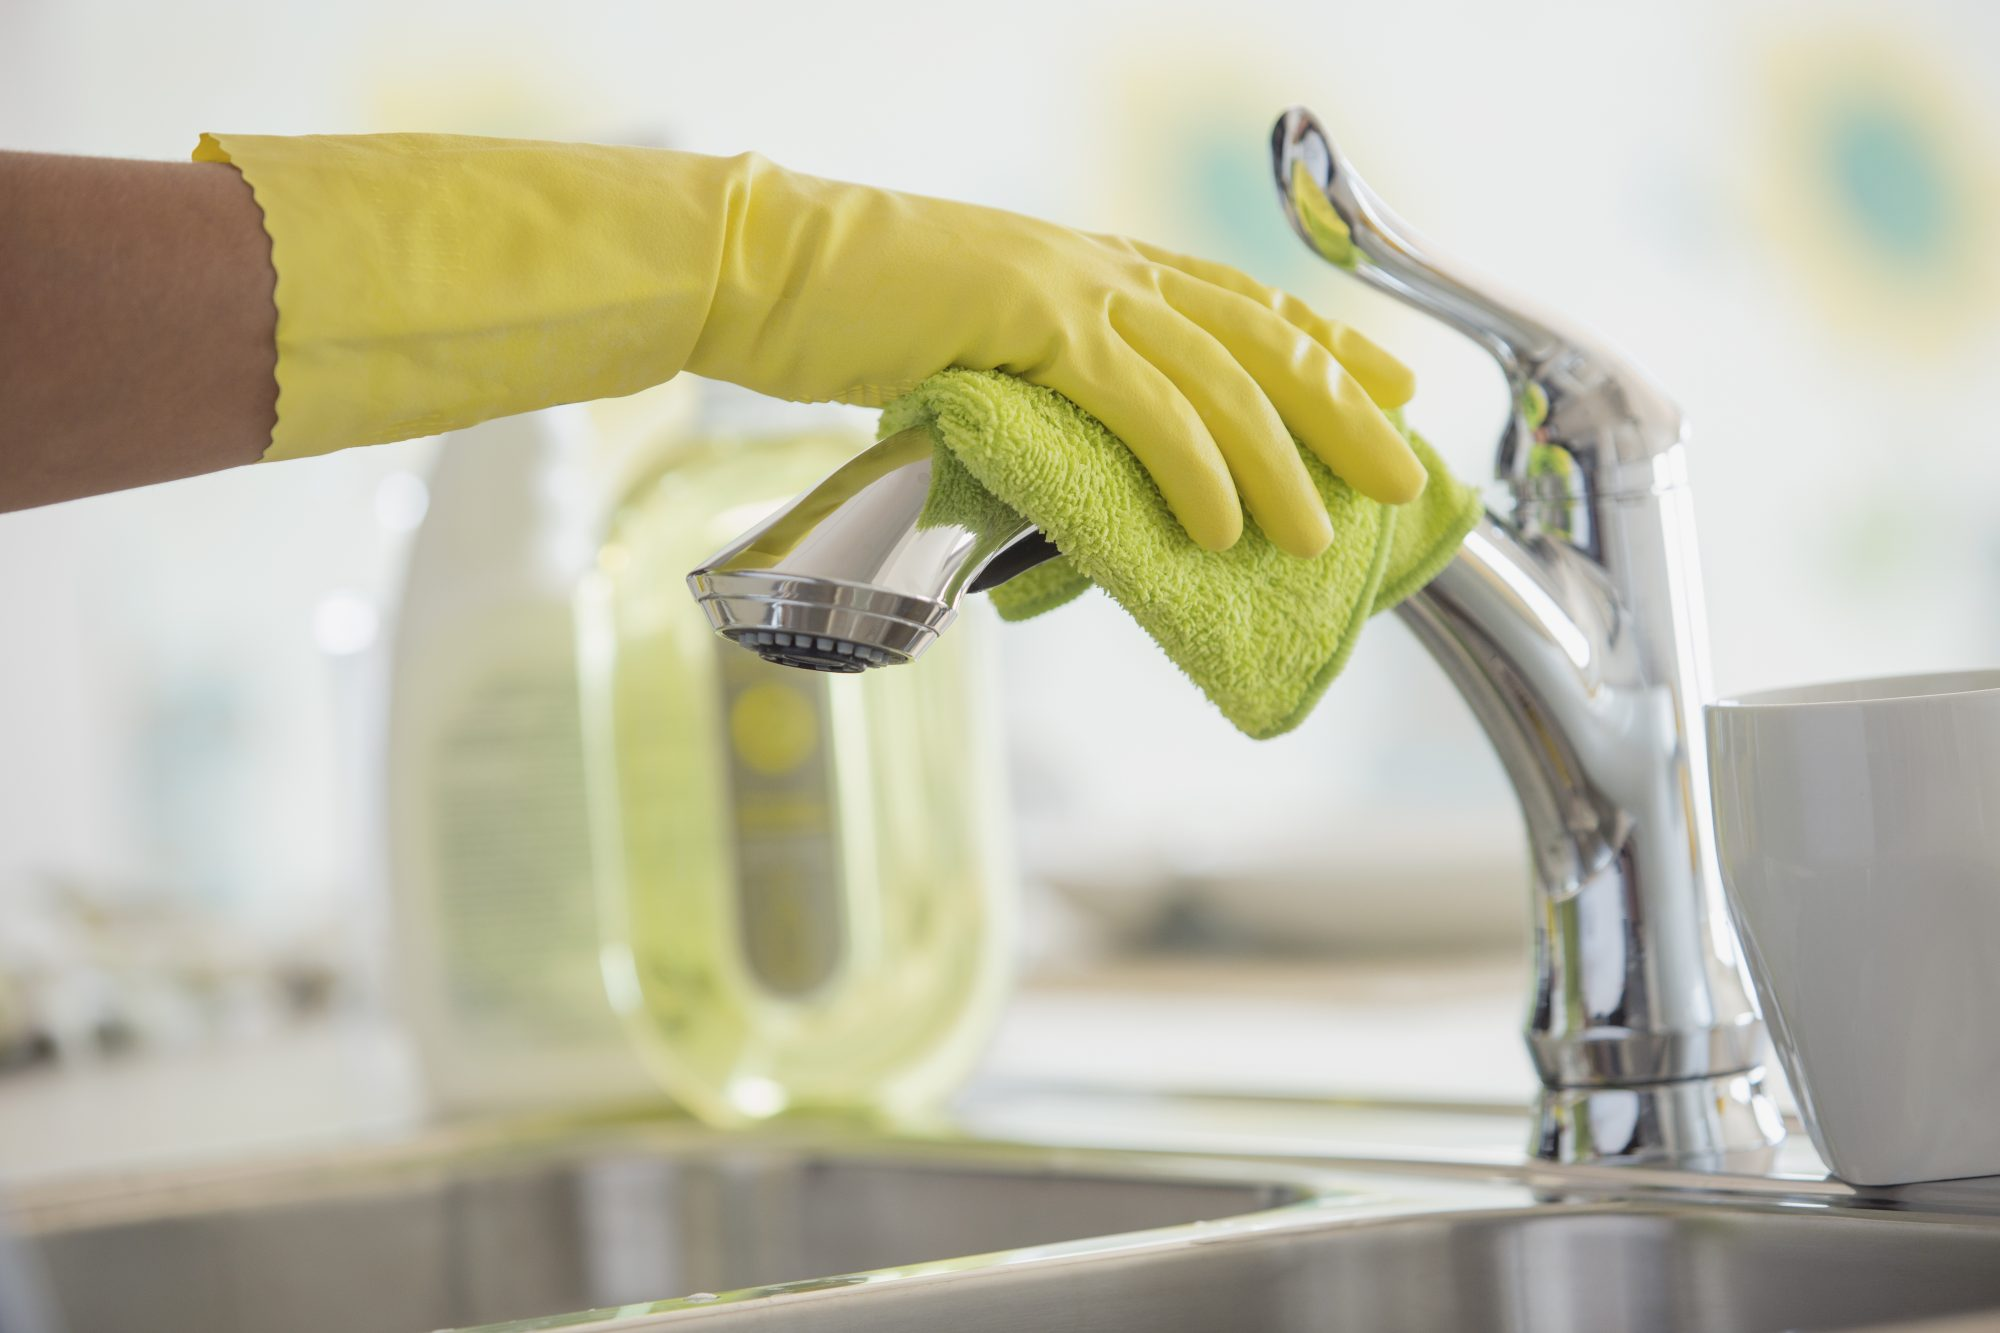 11 Kitchen Things You Need To Clean ASAP